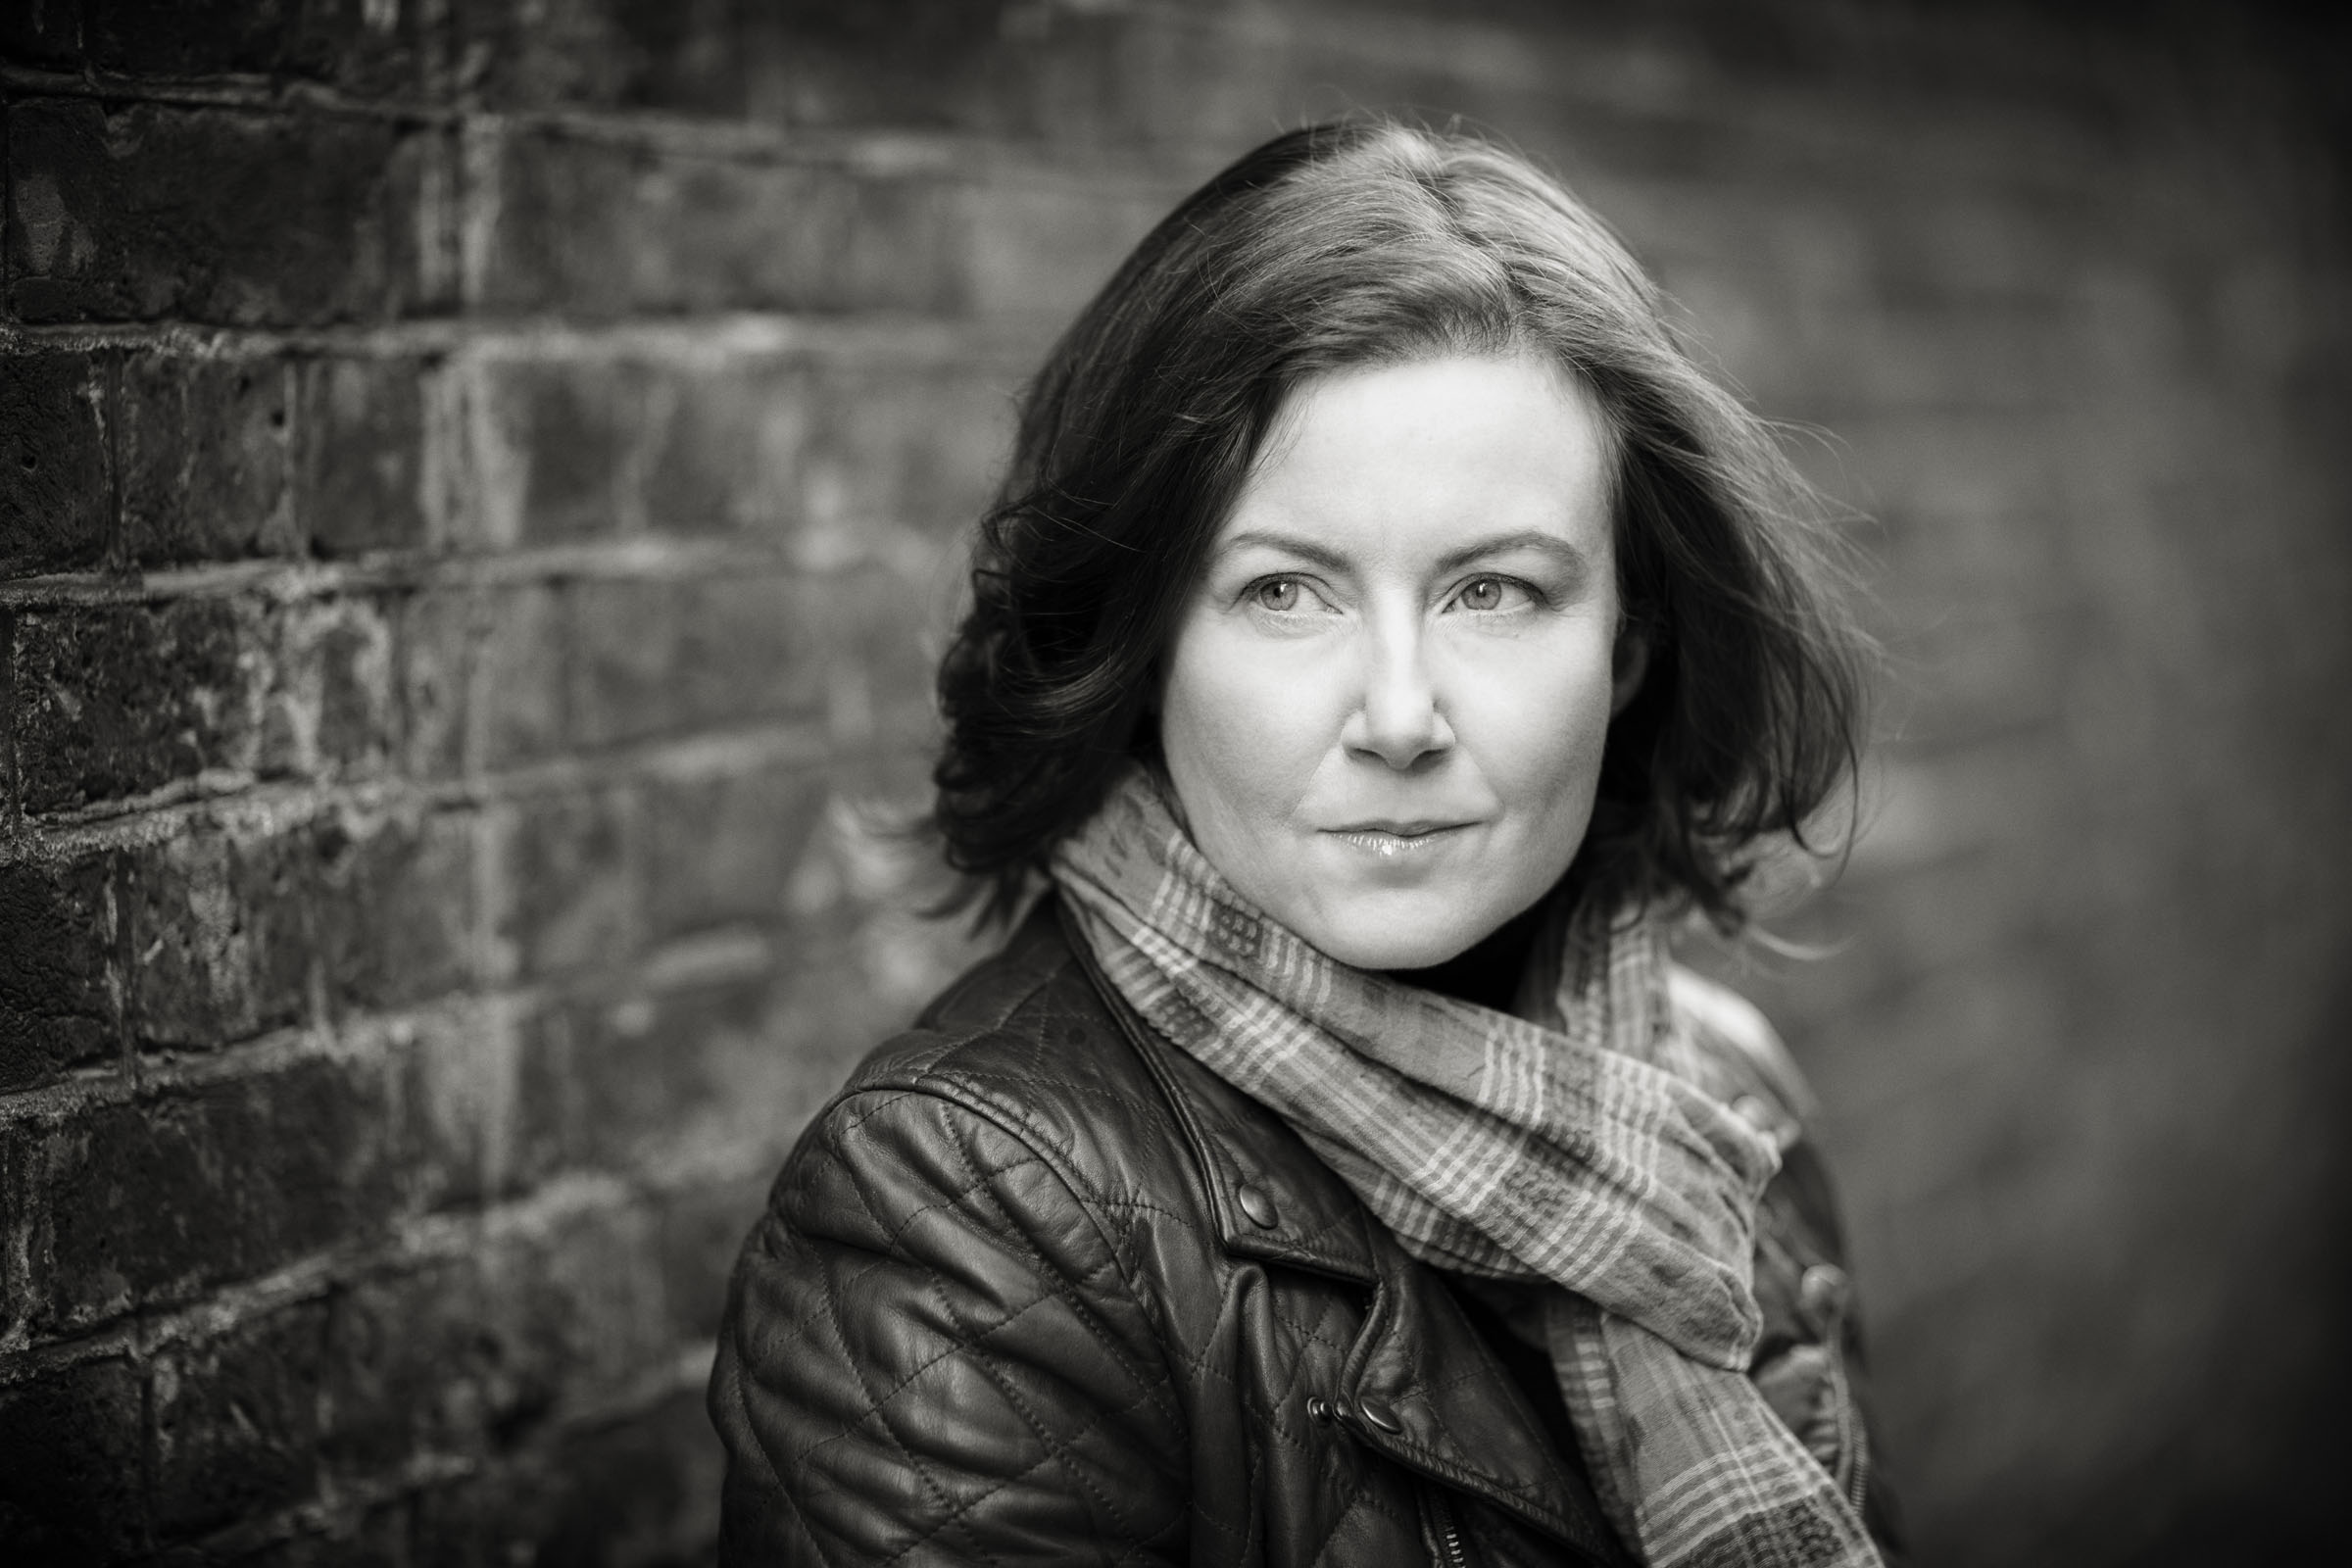 A black and white photograph of the author Valentina Giambanco, by Helen Maybanks